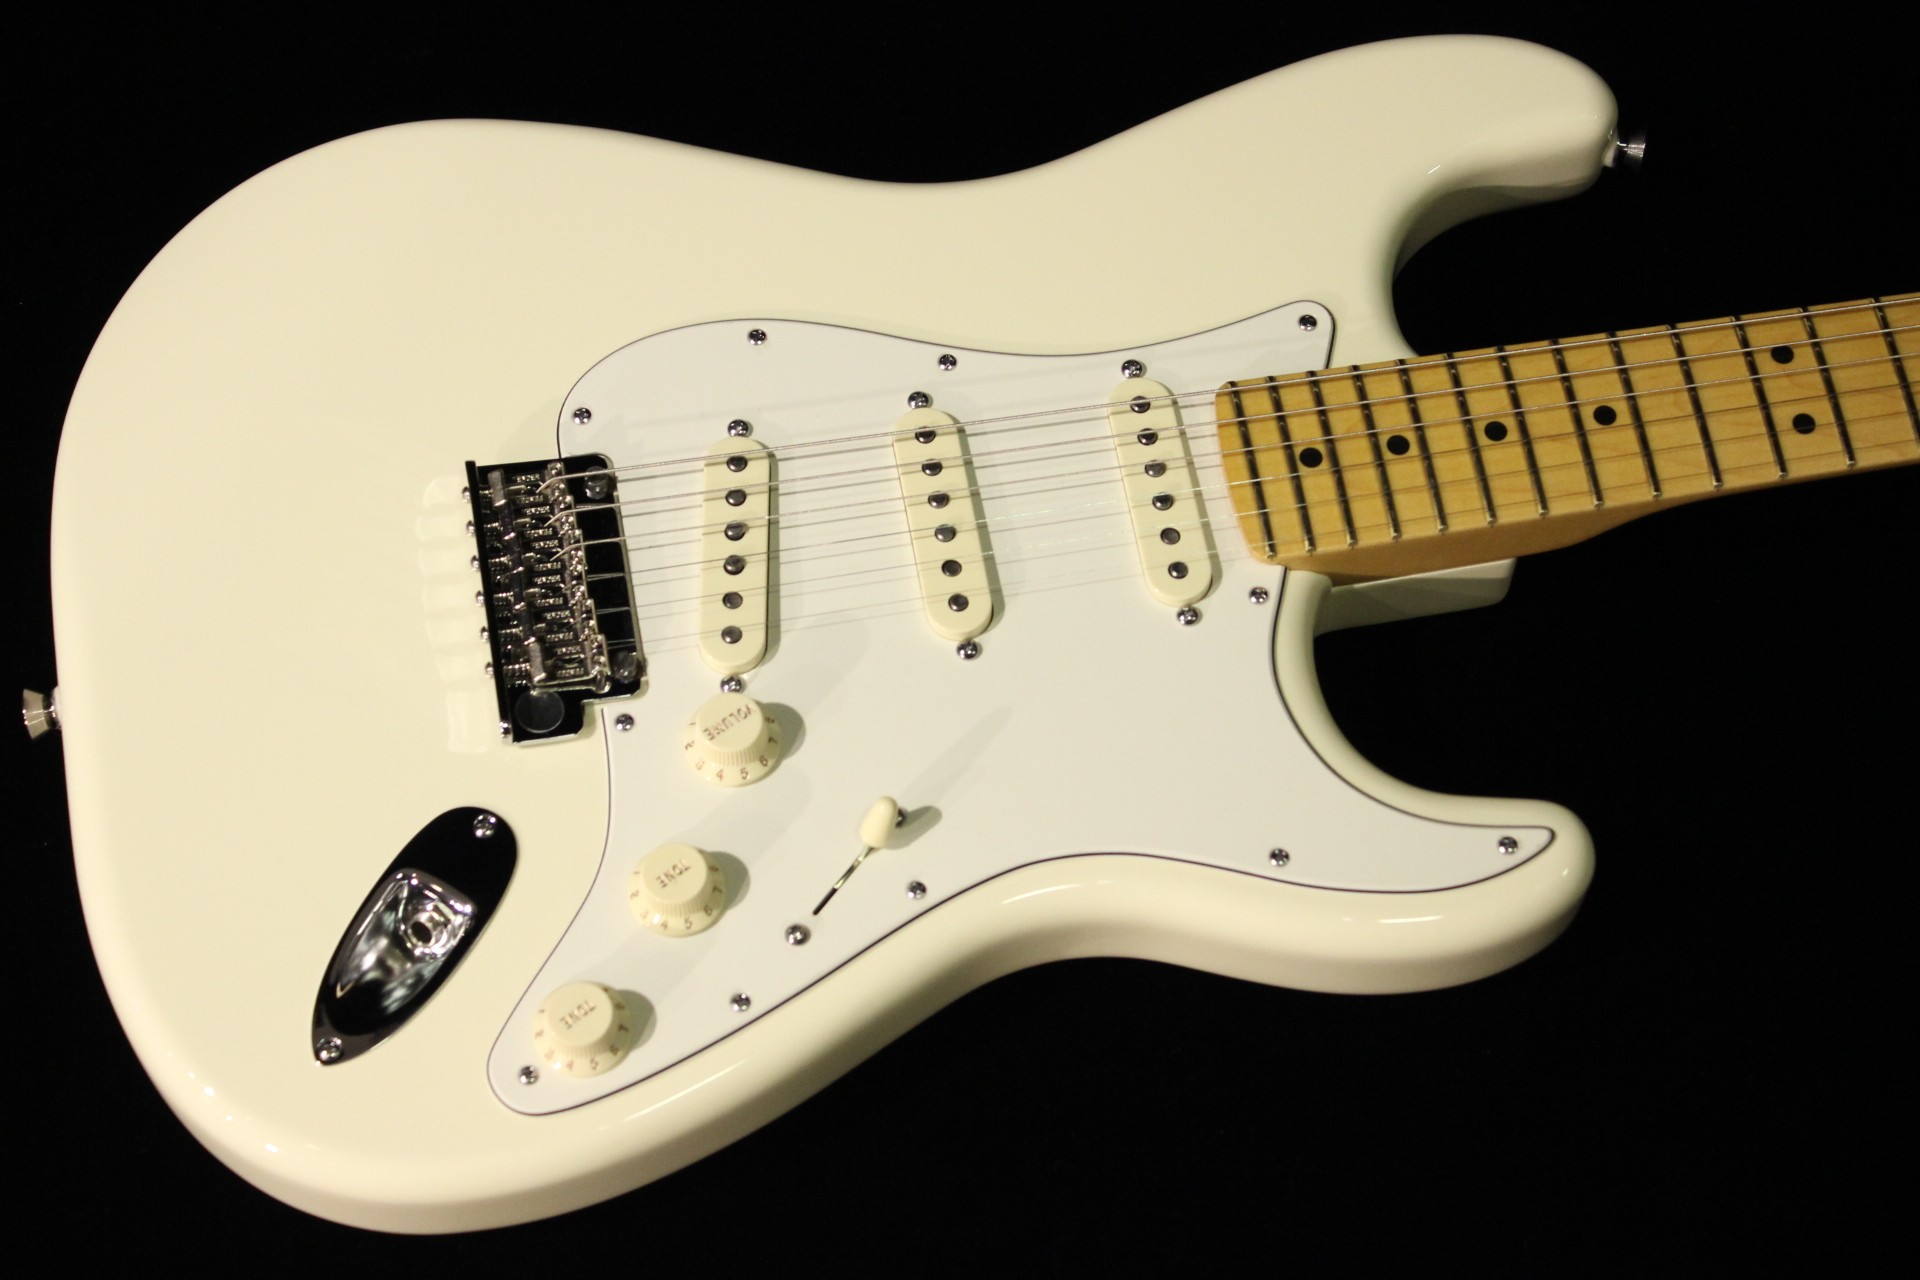 fender american standard stratocaster olympic white sn us14052226 gino guitars. Black Bedroom Furniture Sets. Home Design Ideas